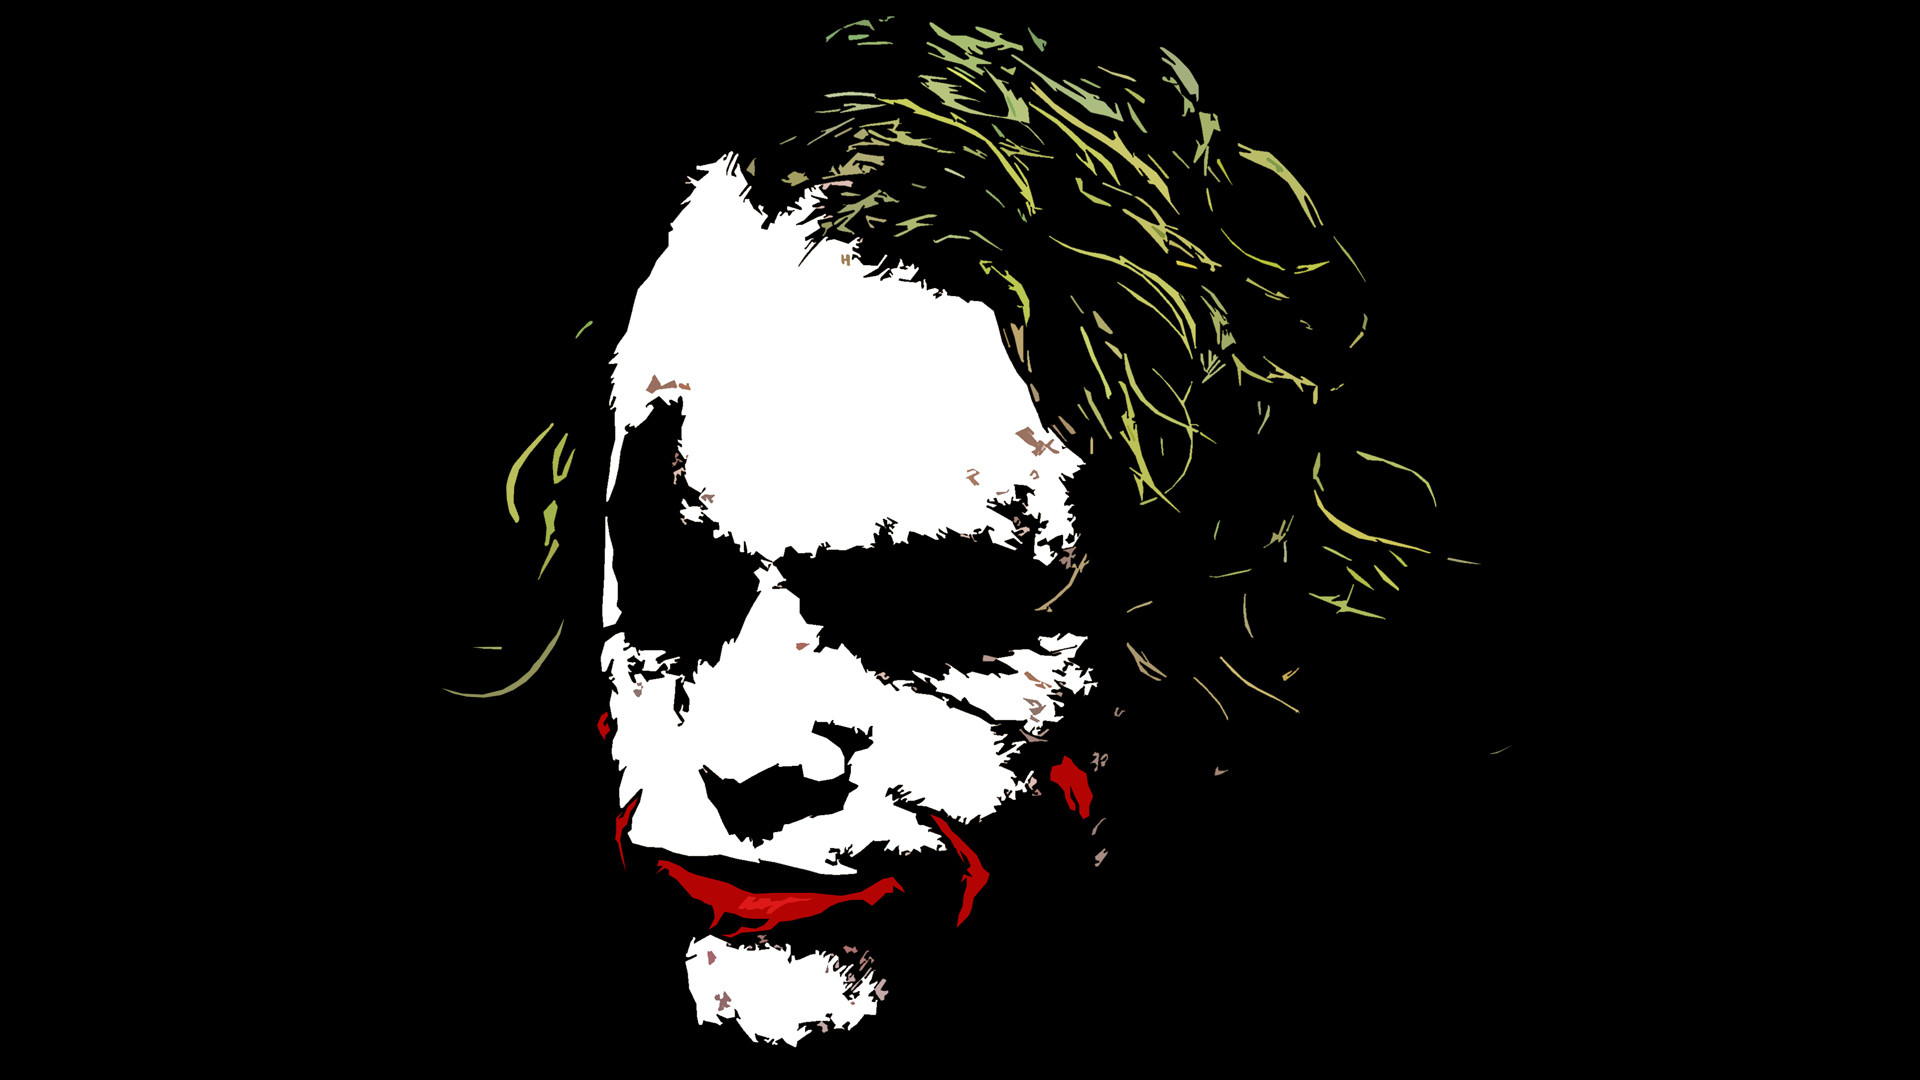 Joker Hd Wallpapers: Joker HD Wallpapers 1080p (80+ Images